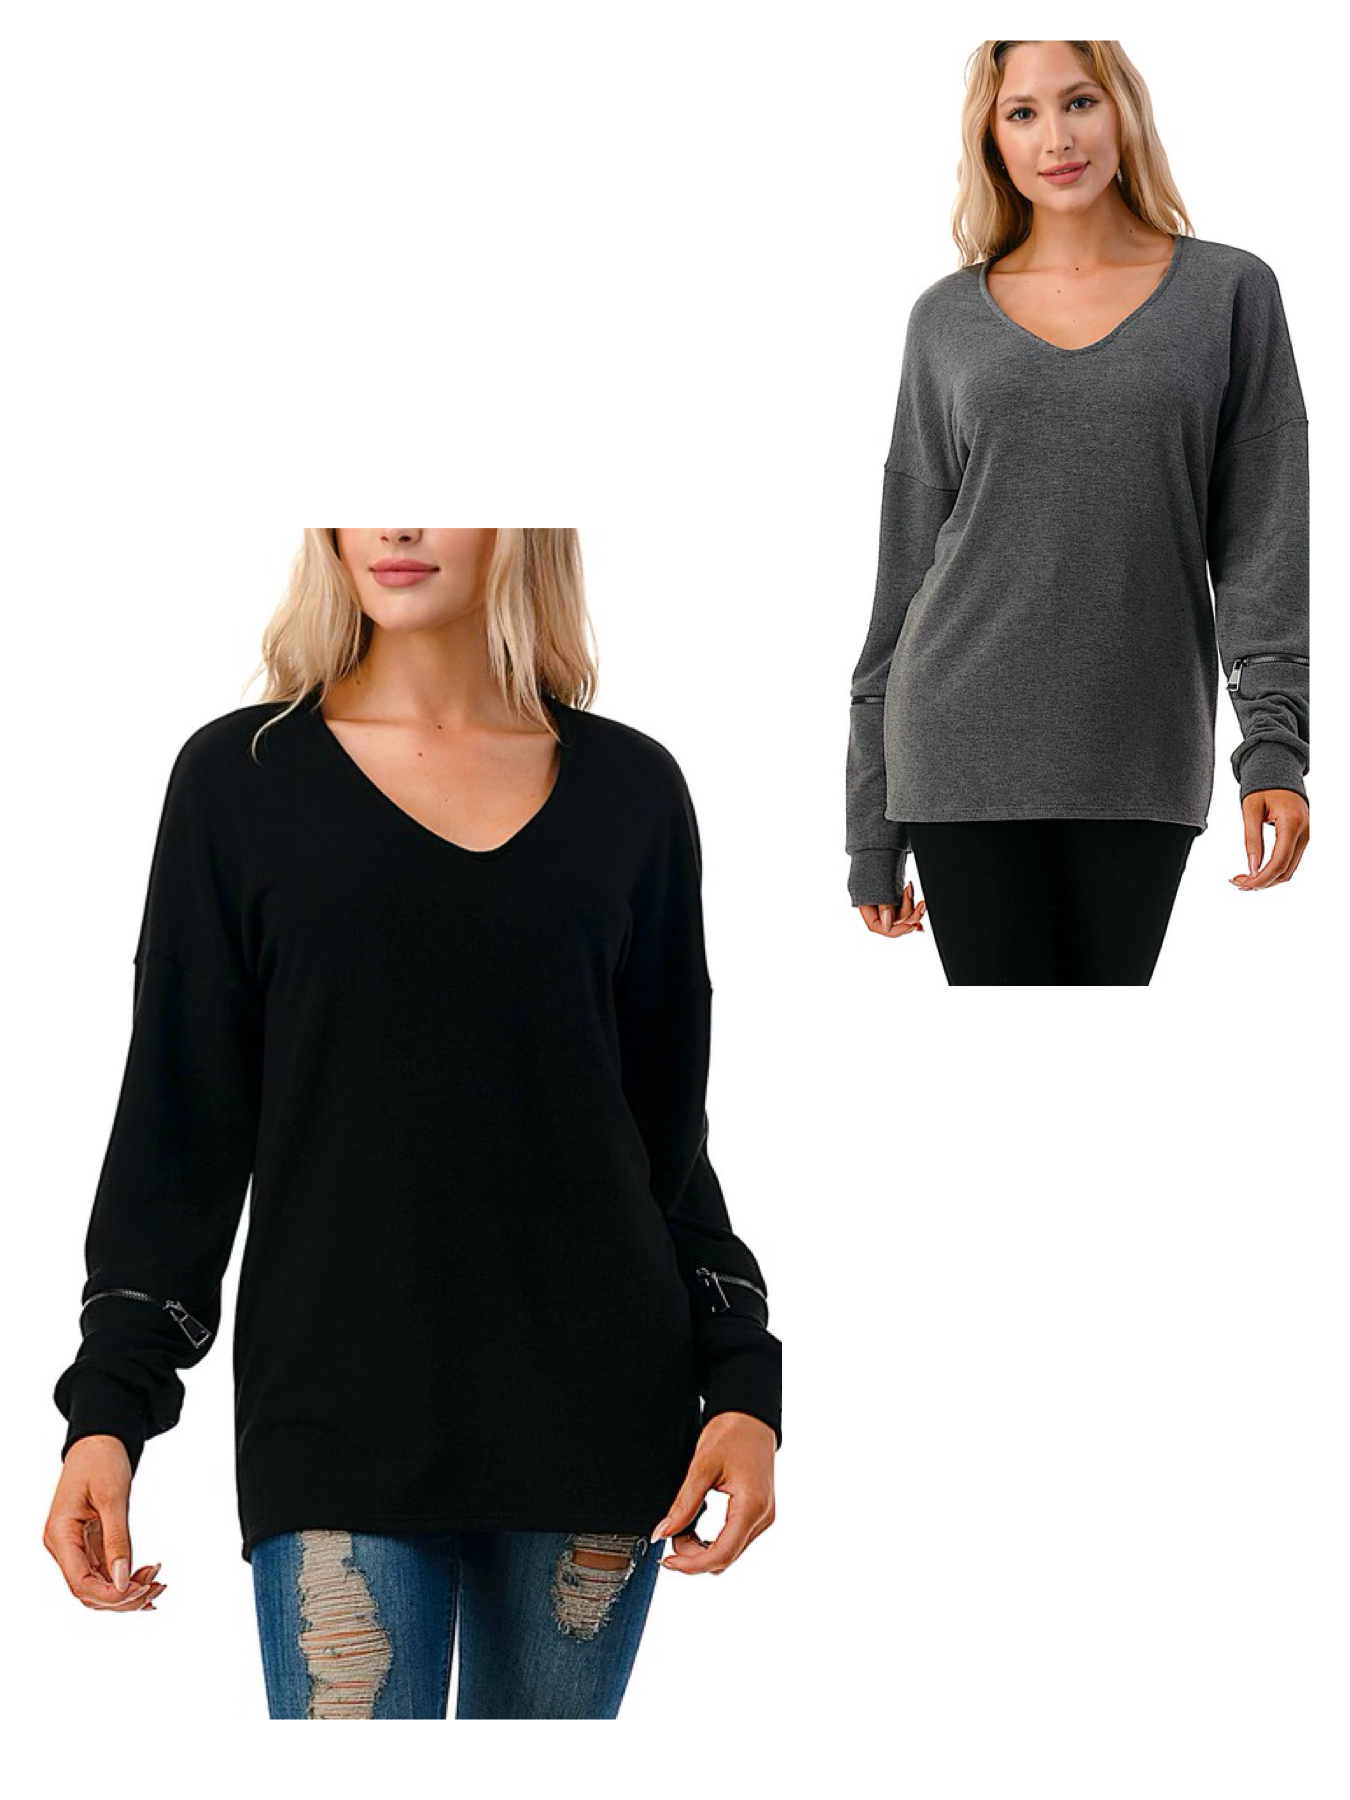 V Neck Top with Zipper Detail